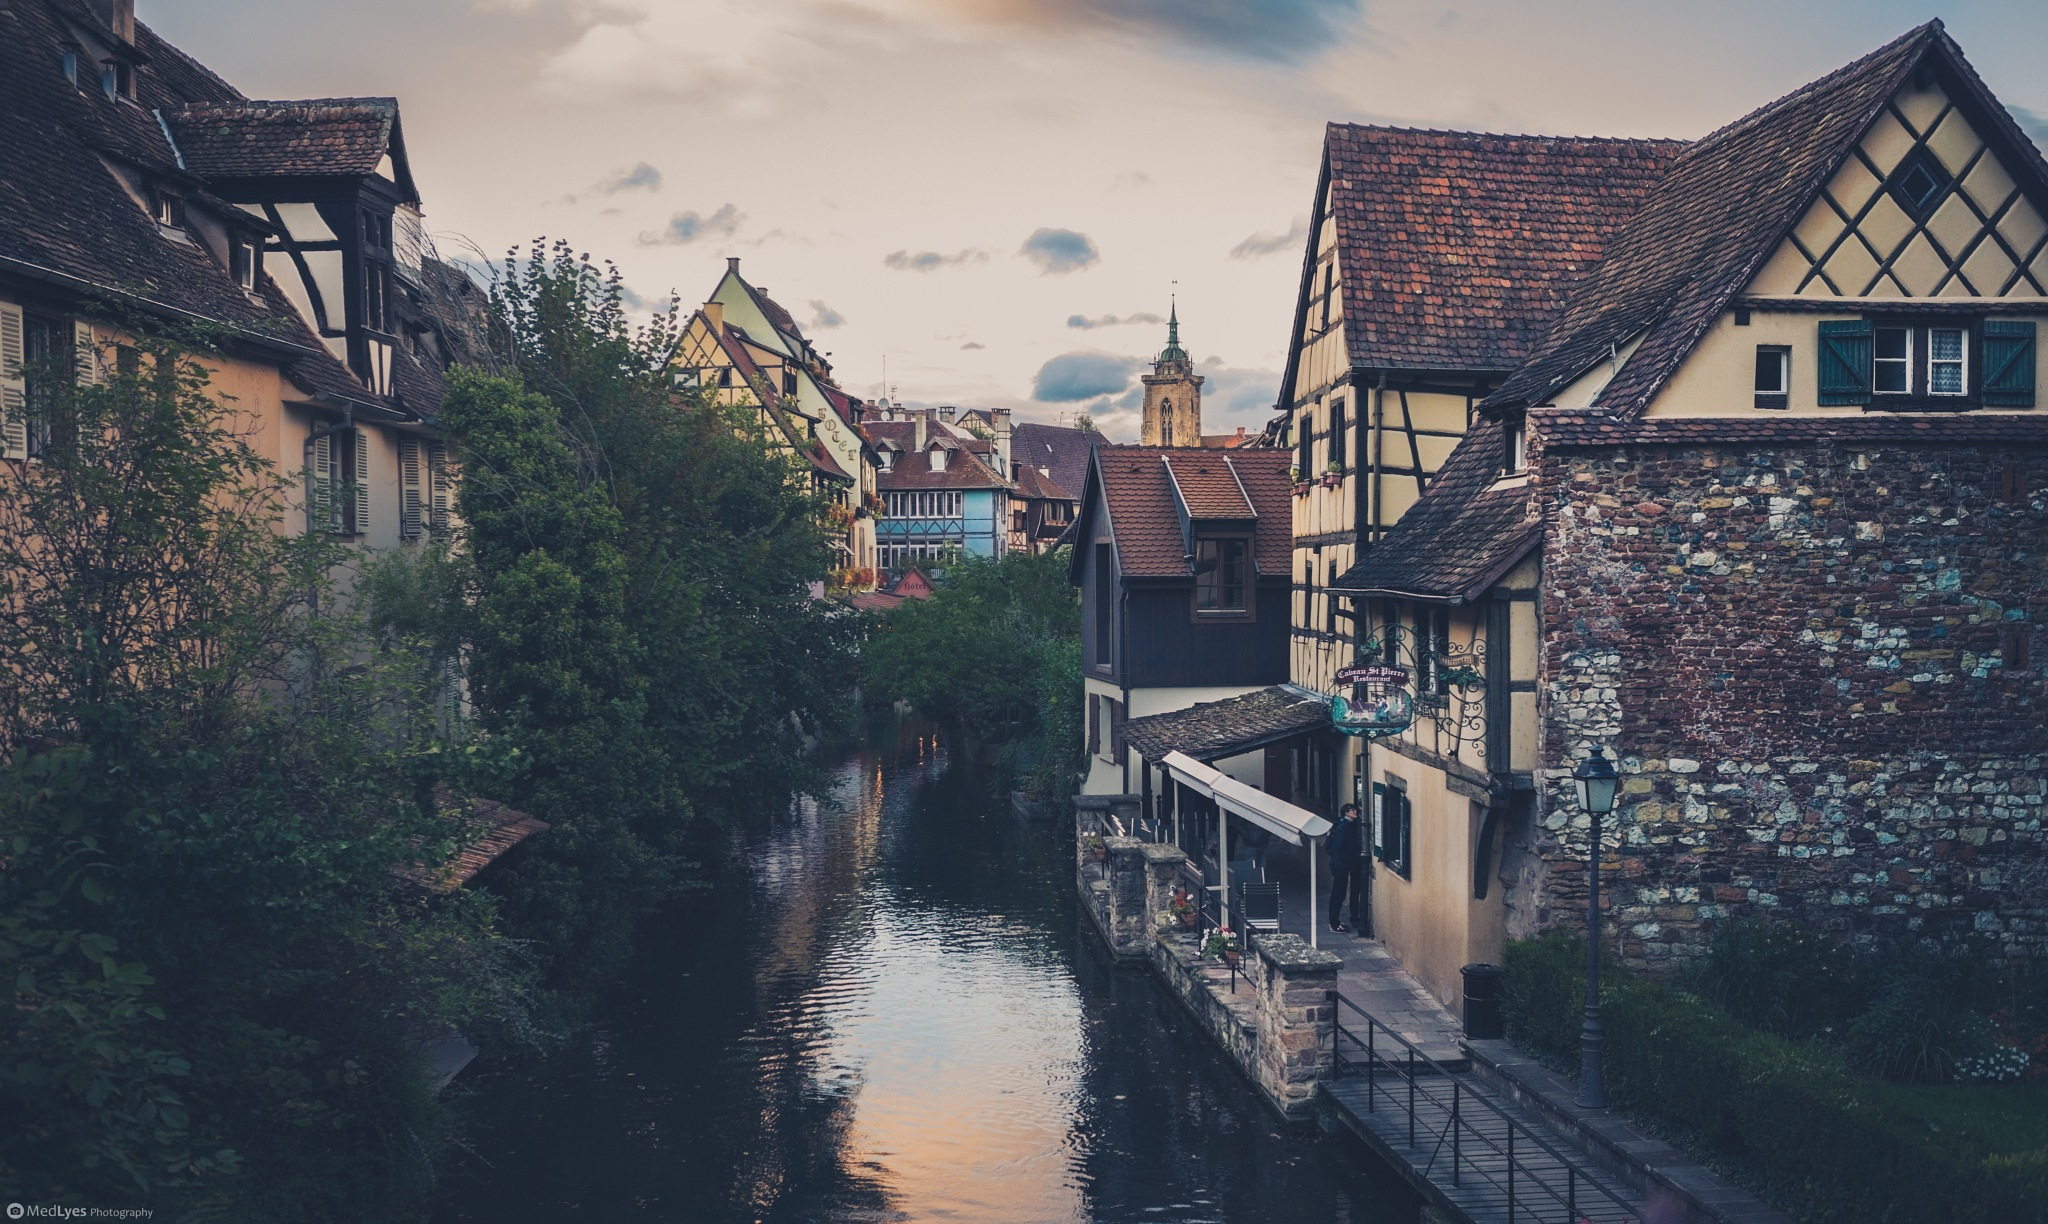 Little Venice Colmar by MedLyes